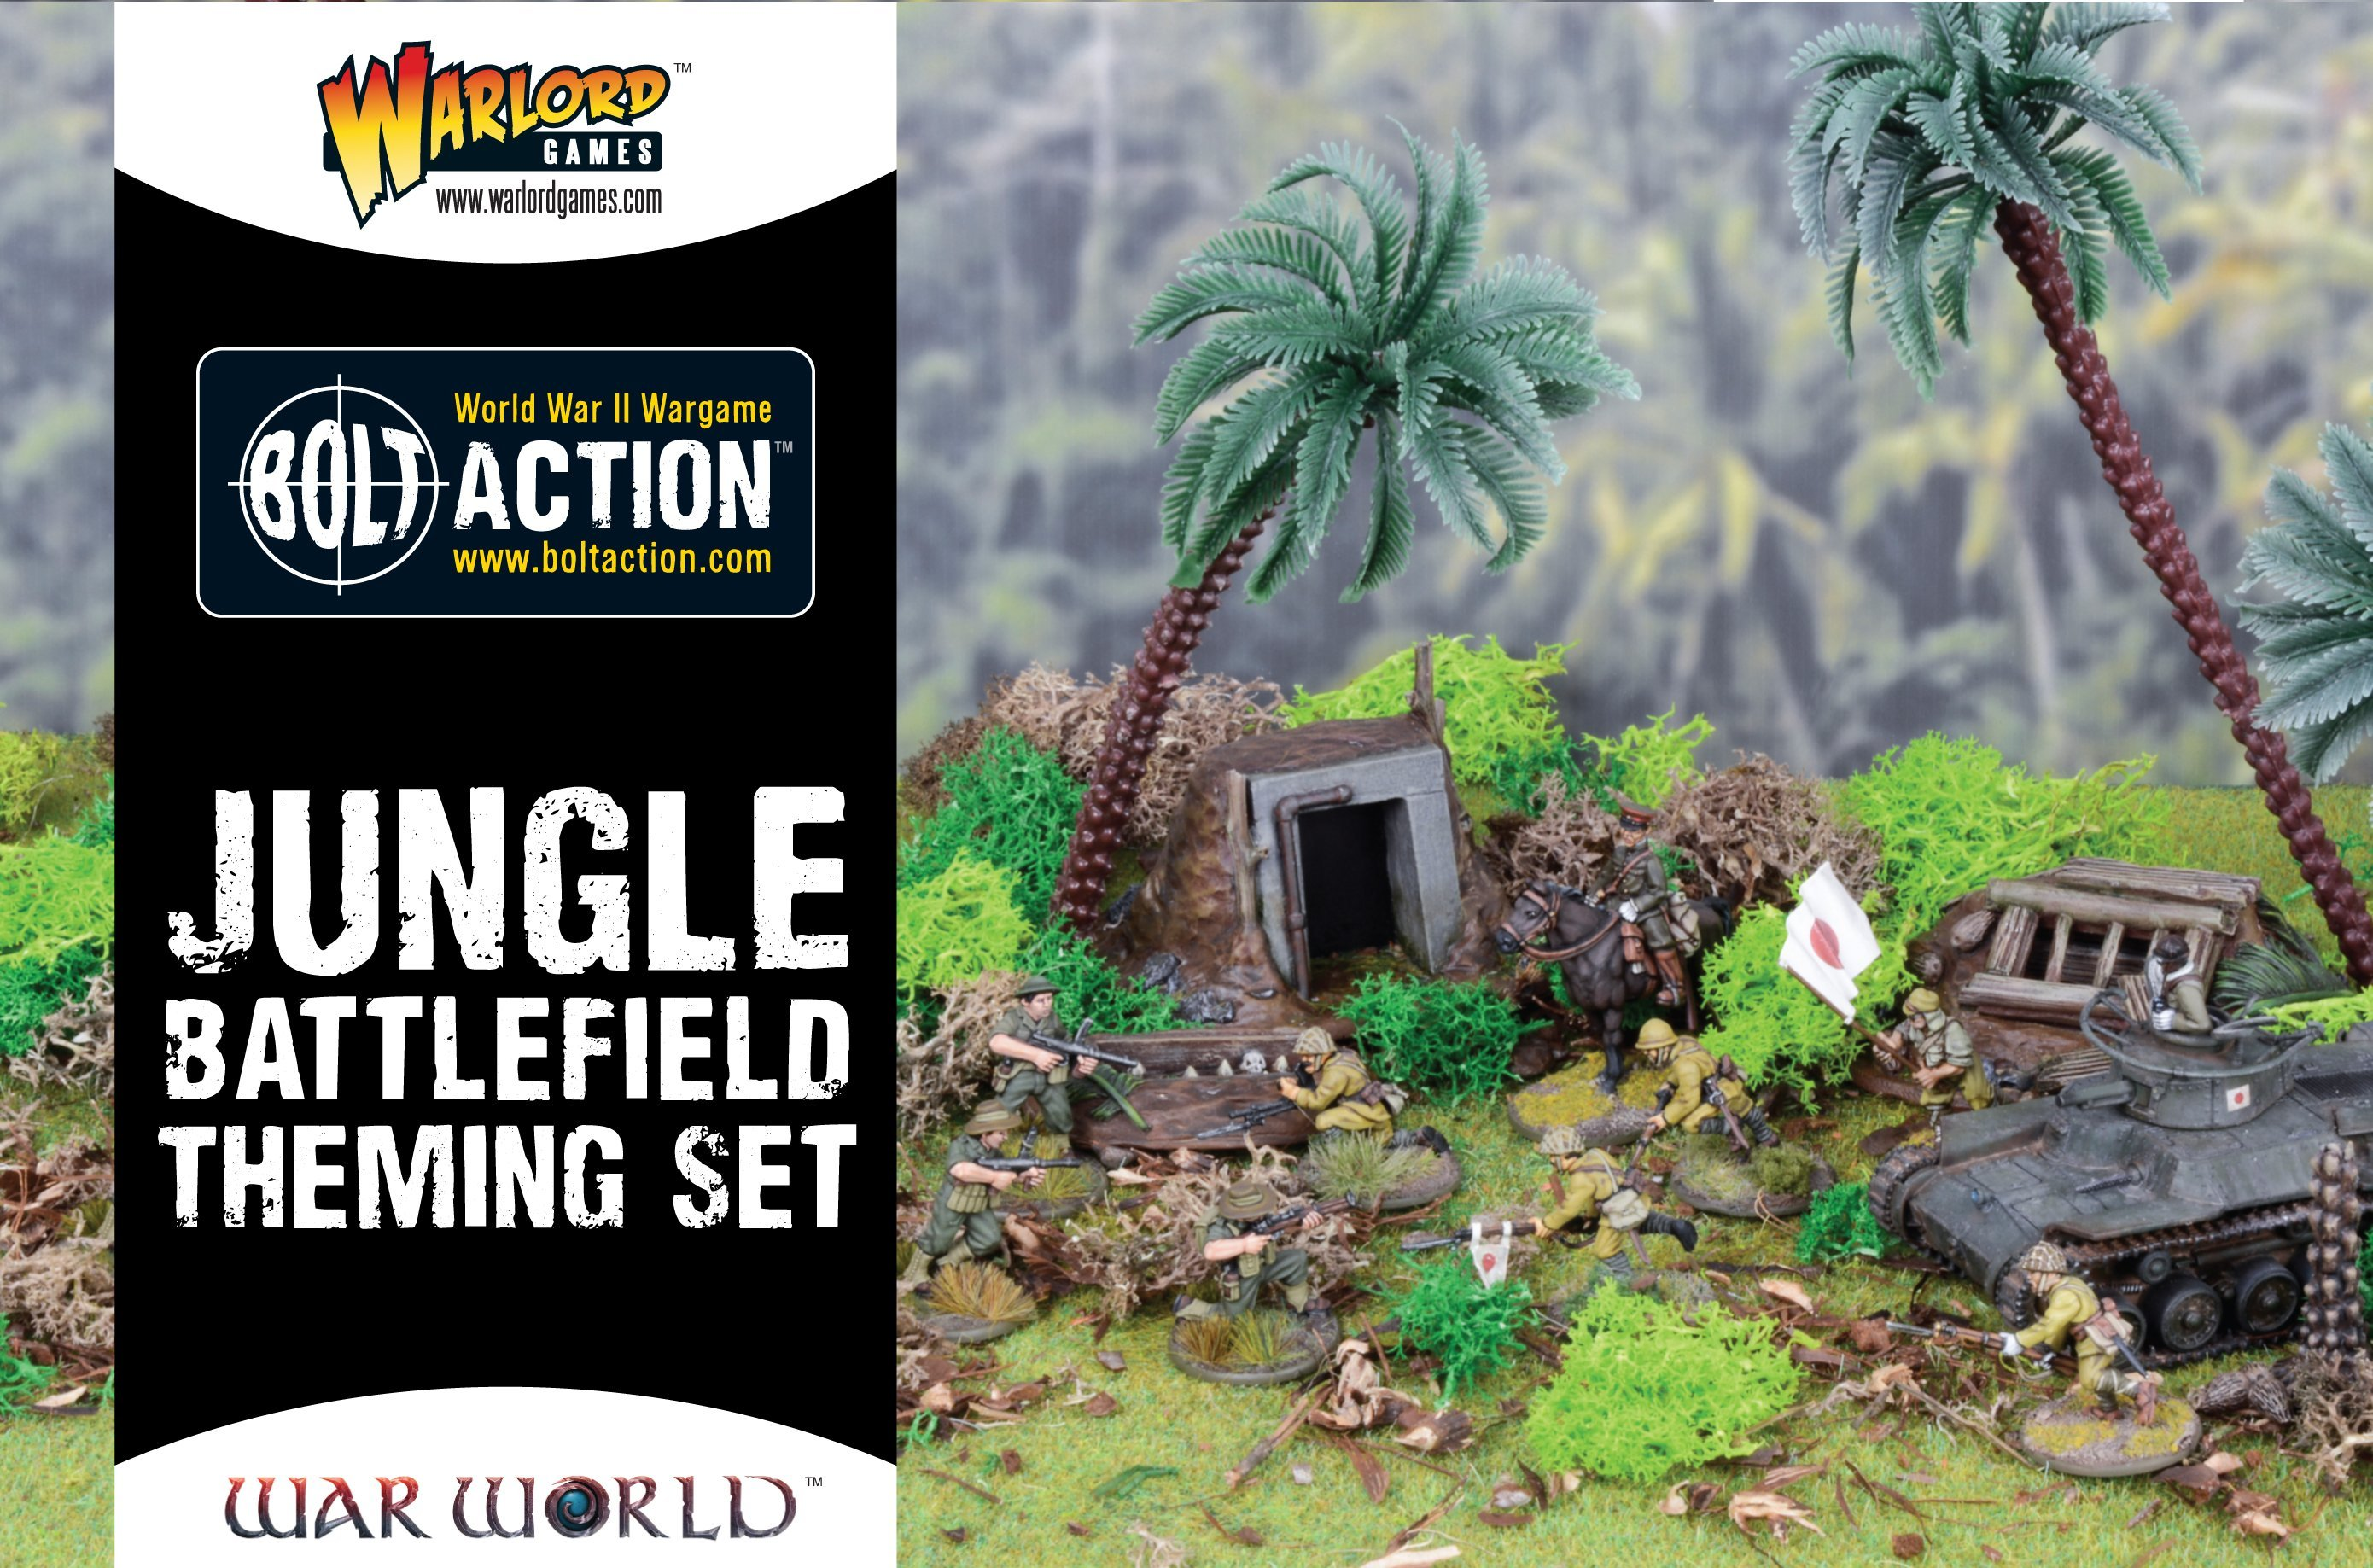 Bolt Action: Jungle Battlefield Theming Set